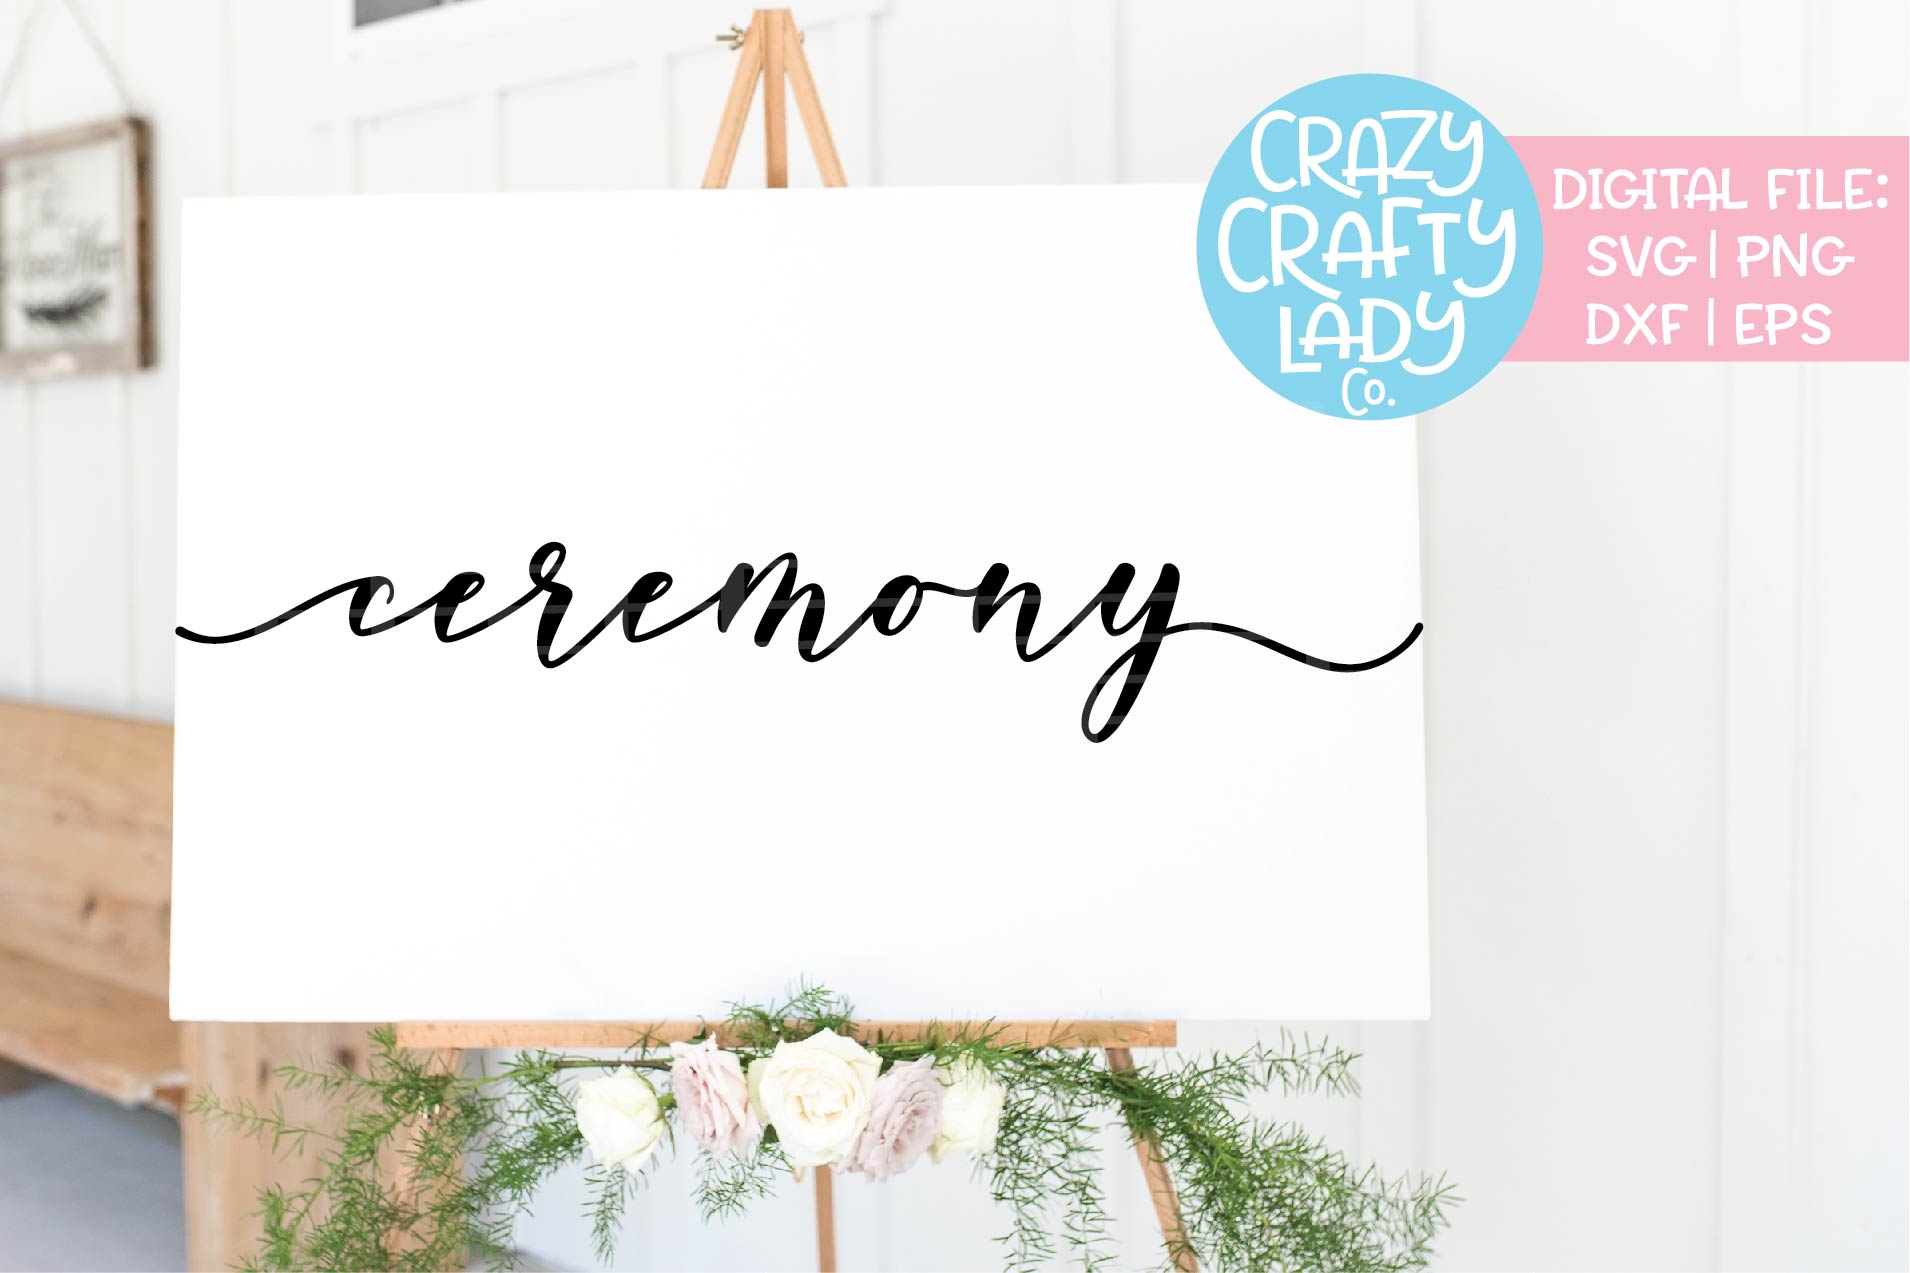 Ceremony Wedding SVG DXF EPS PNG Cut File example image 1